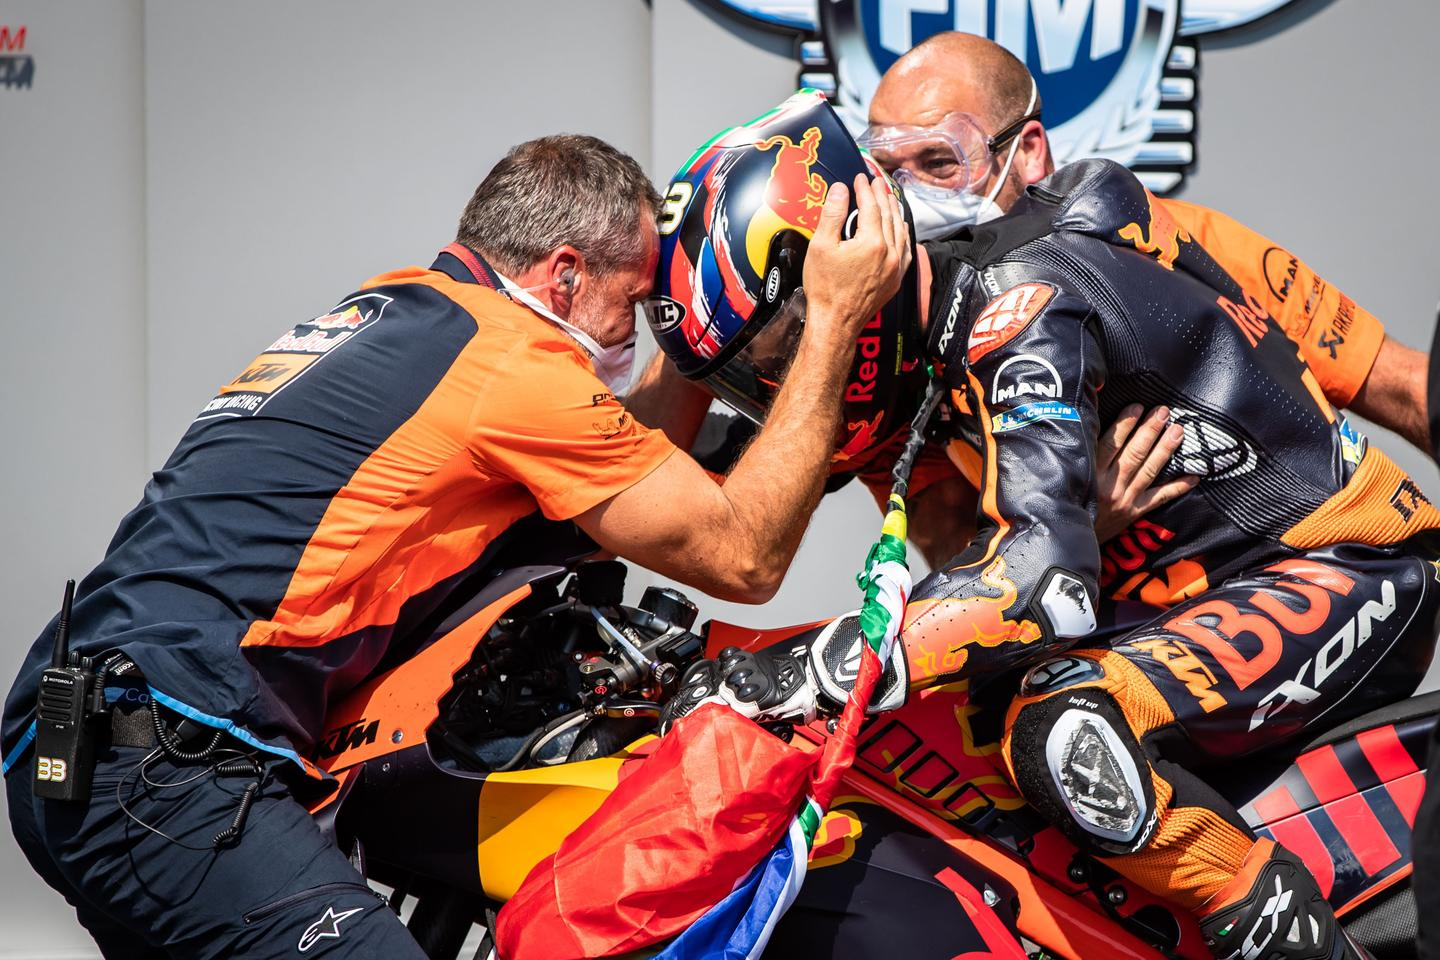 An ecstatic KTM team greets Brad Binder as he returns to parc fermé with the company's first-ever MotoGP win